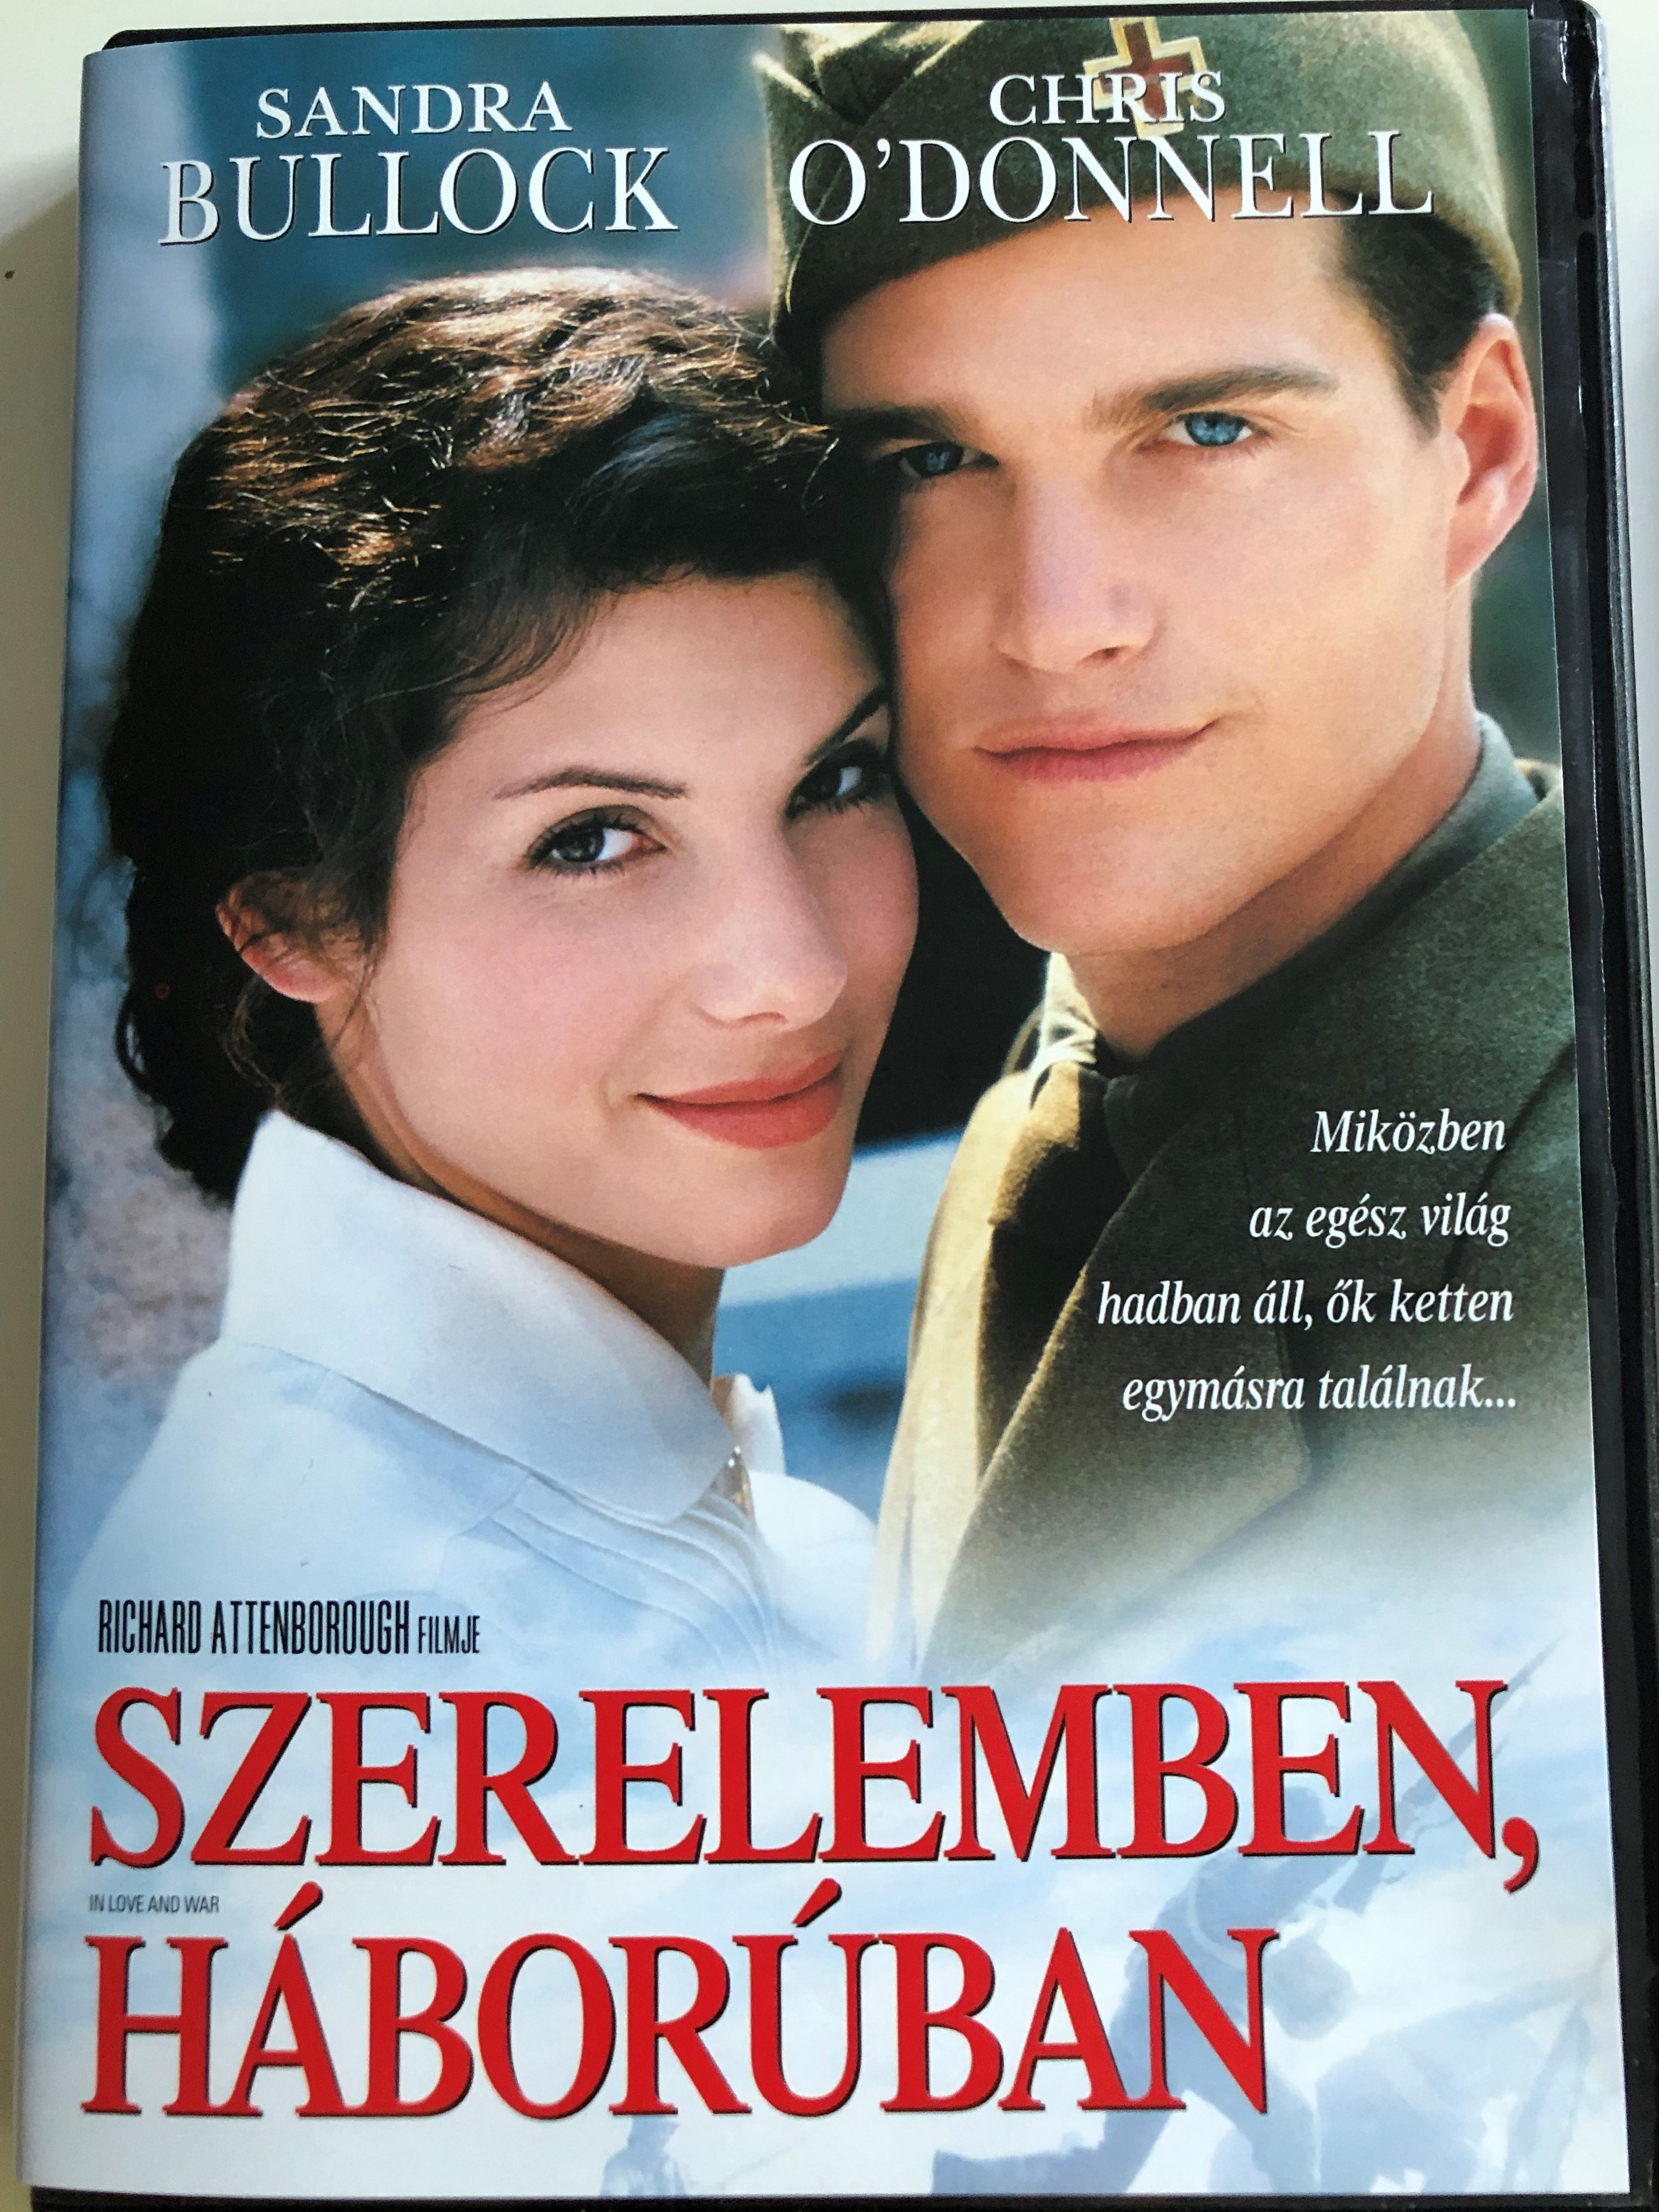 in-love-and-war-dvd-1996-szerelemben-h-bor-ban-directed-by-richard-attenborough-starring-sandra-bullock-chris-o-donnell-mackenzie-astin-emilio-bonucci-1-.jpg